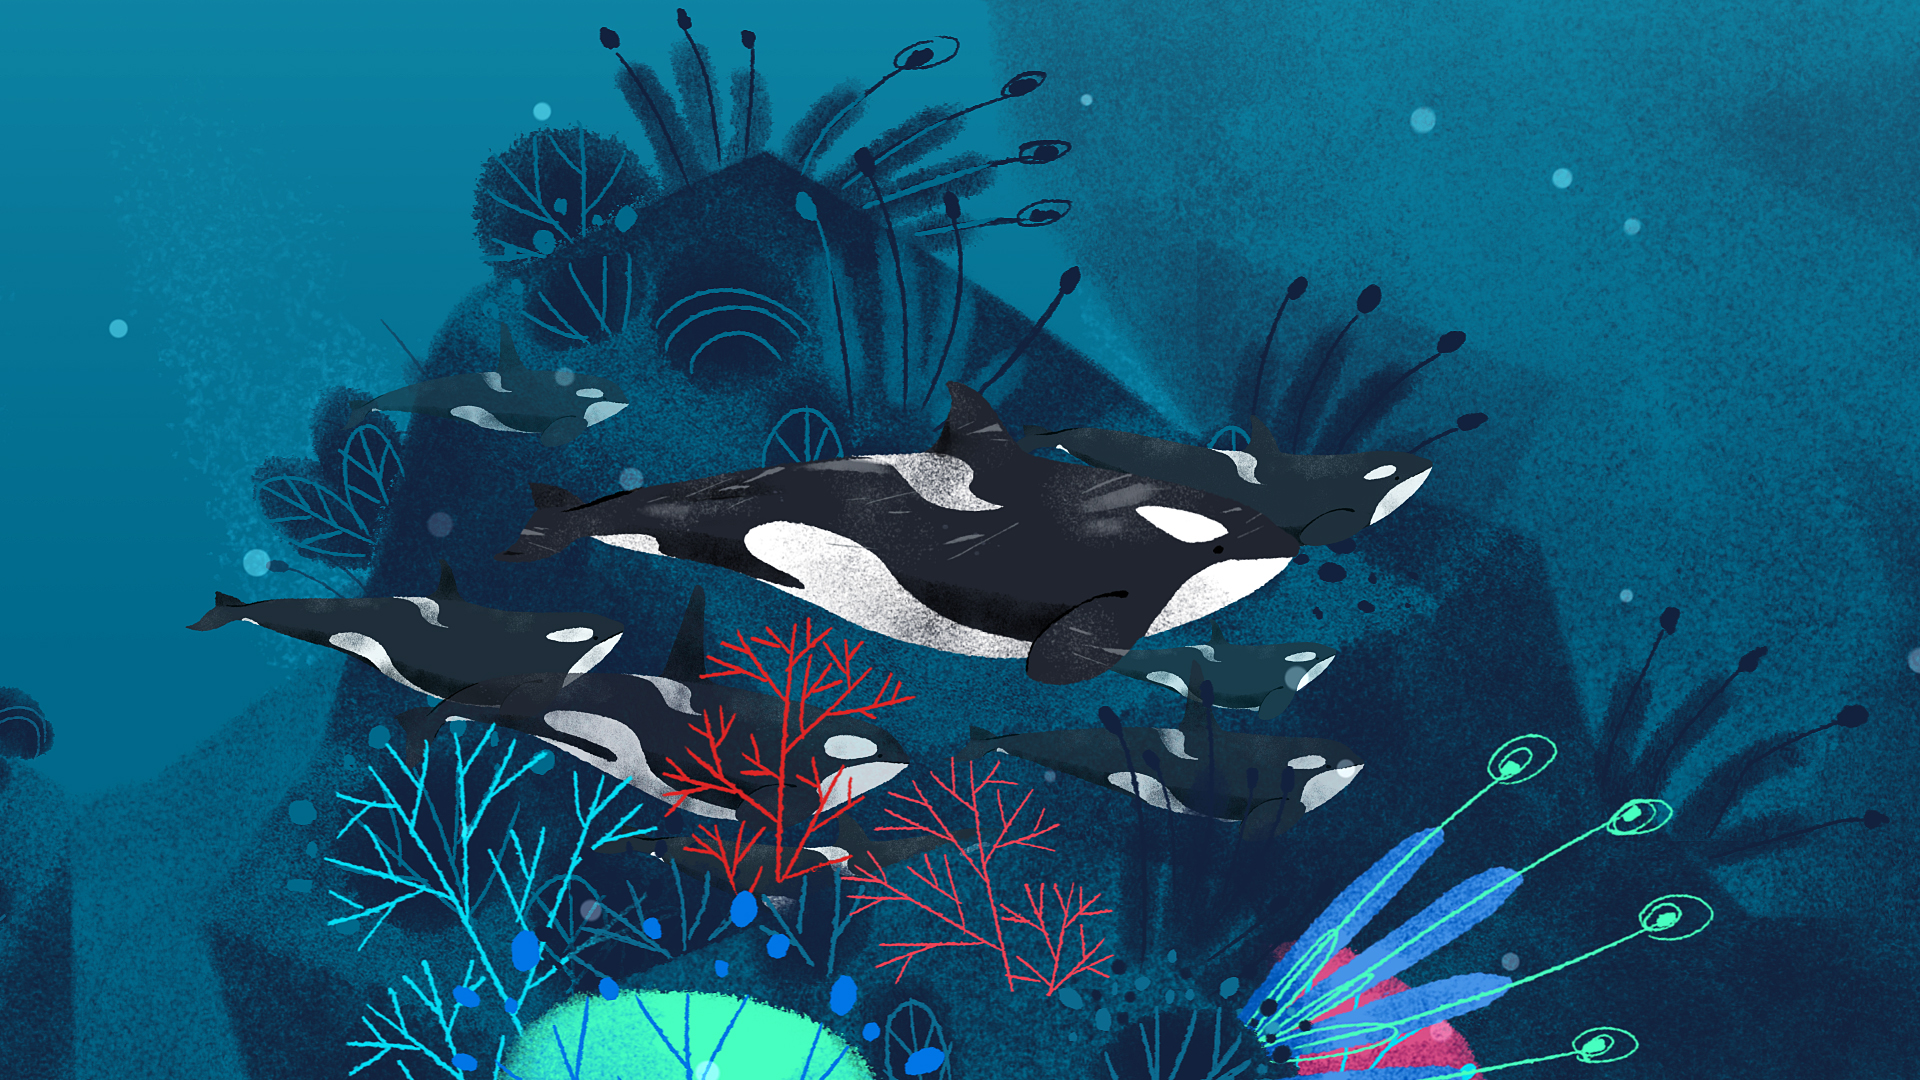 Coral reef and killer whales